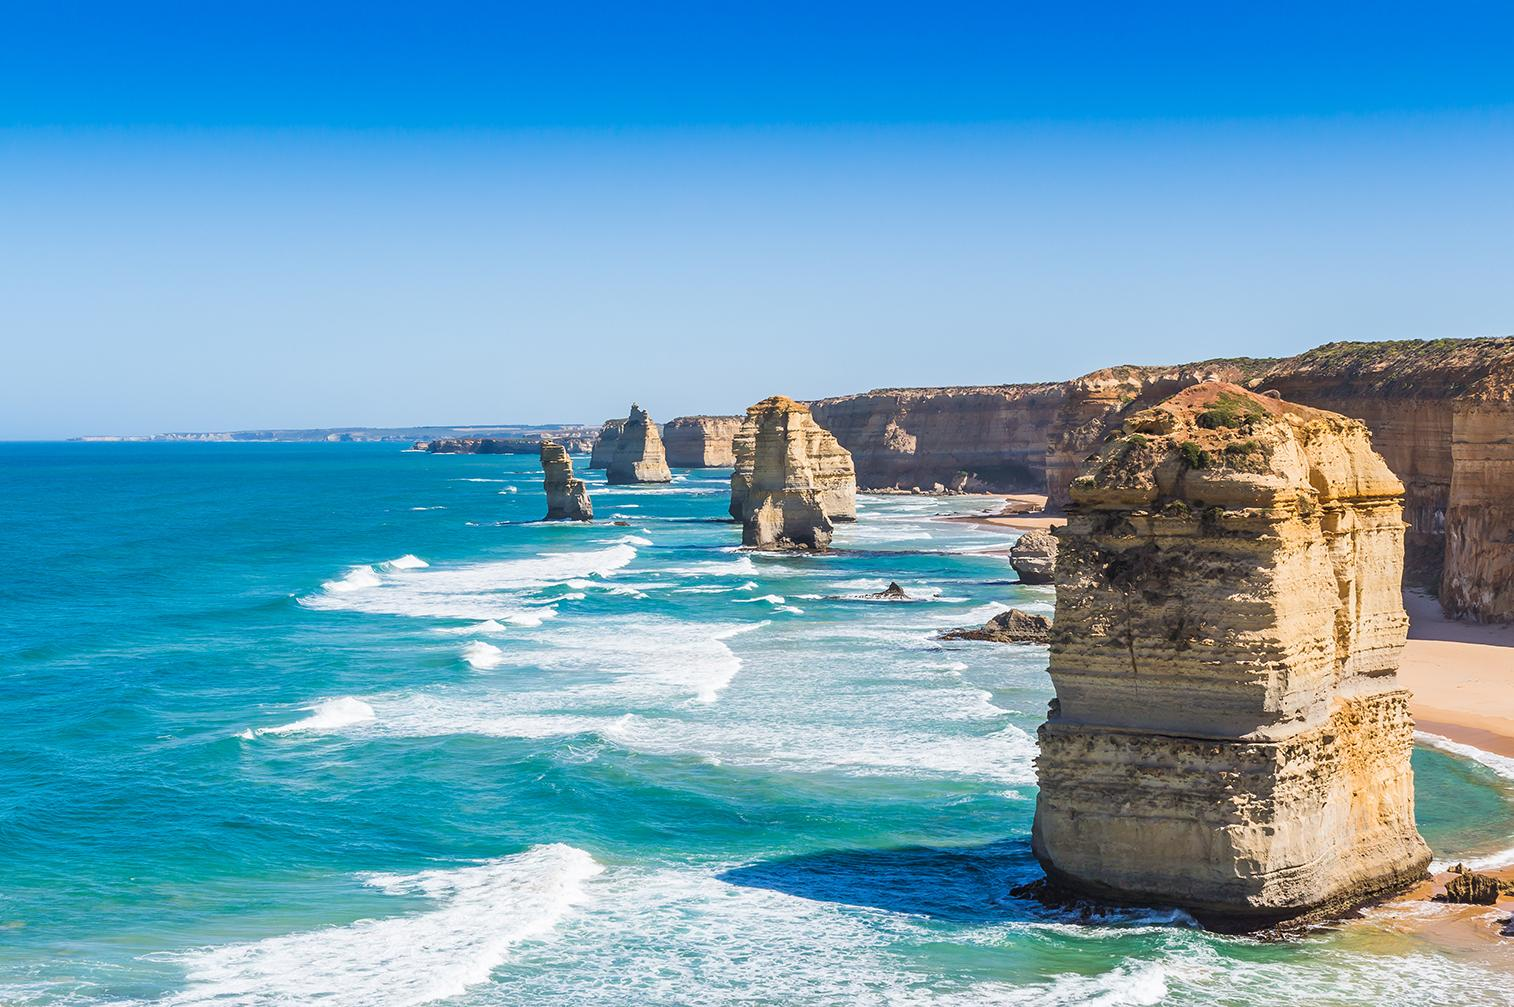 Views of Melbourne's coastline from the Great Ocean Road